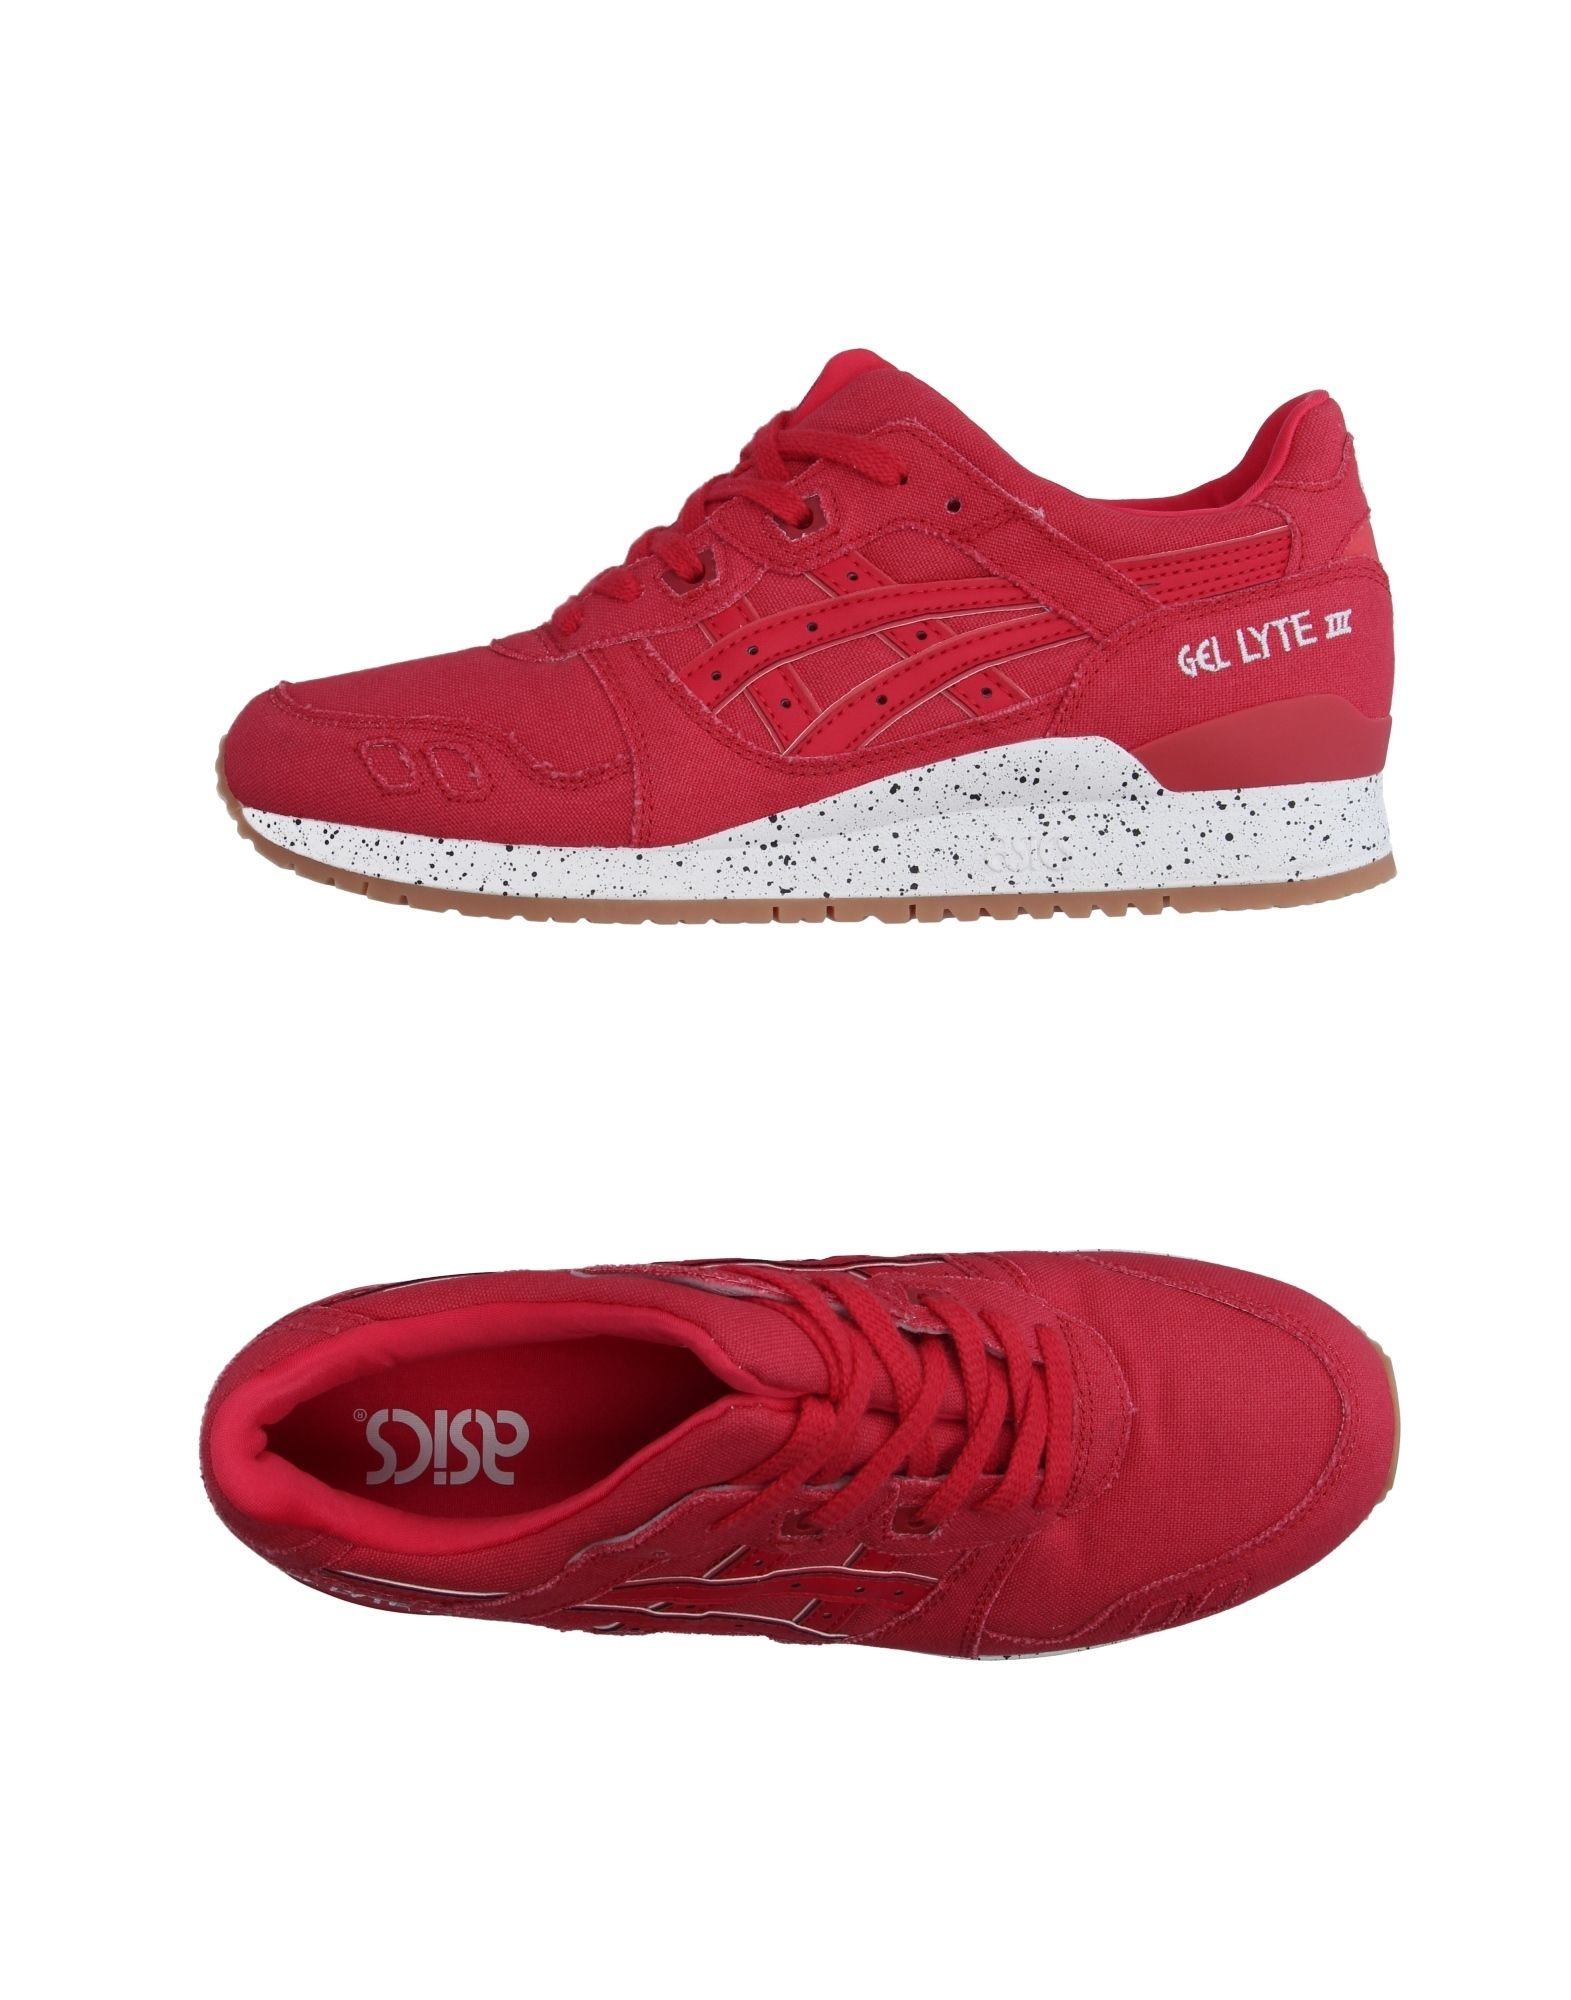 Asics on Sneakers - Men Asics Sneakers online on Asics  Canada - 11152386TP 3d57aa